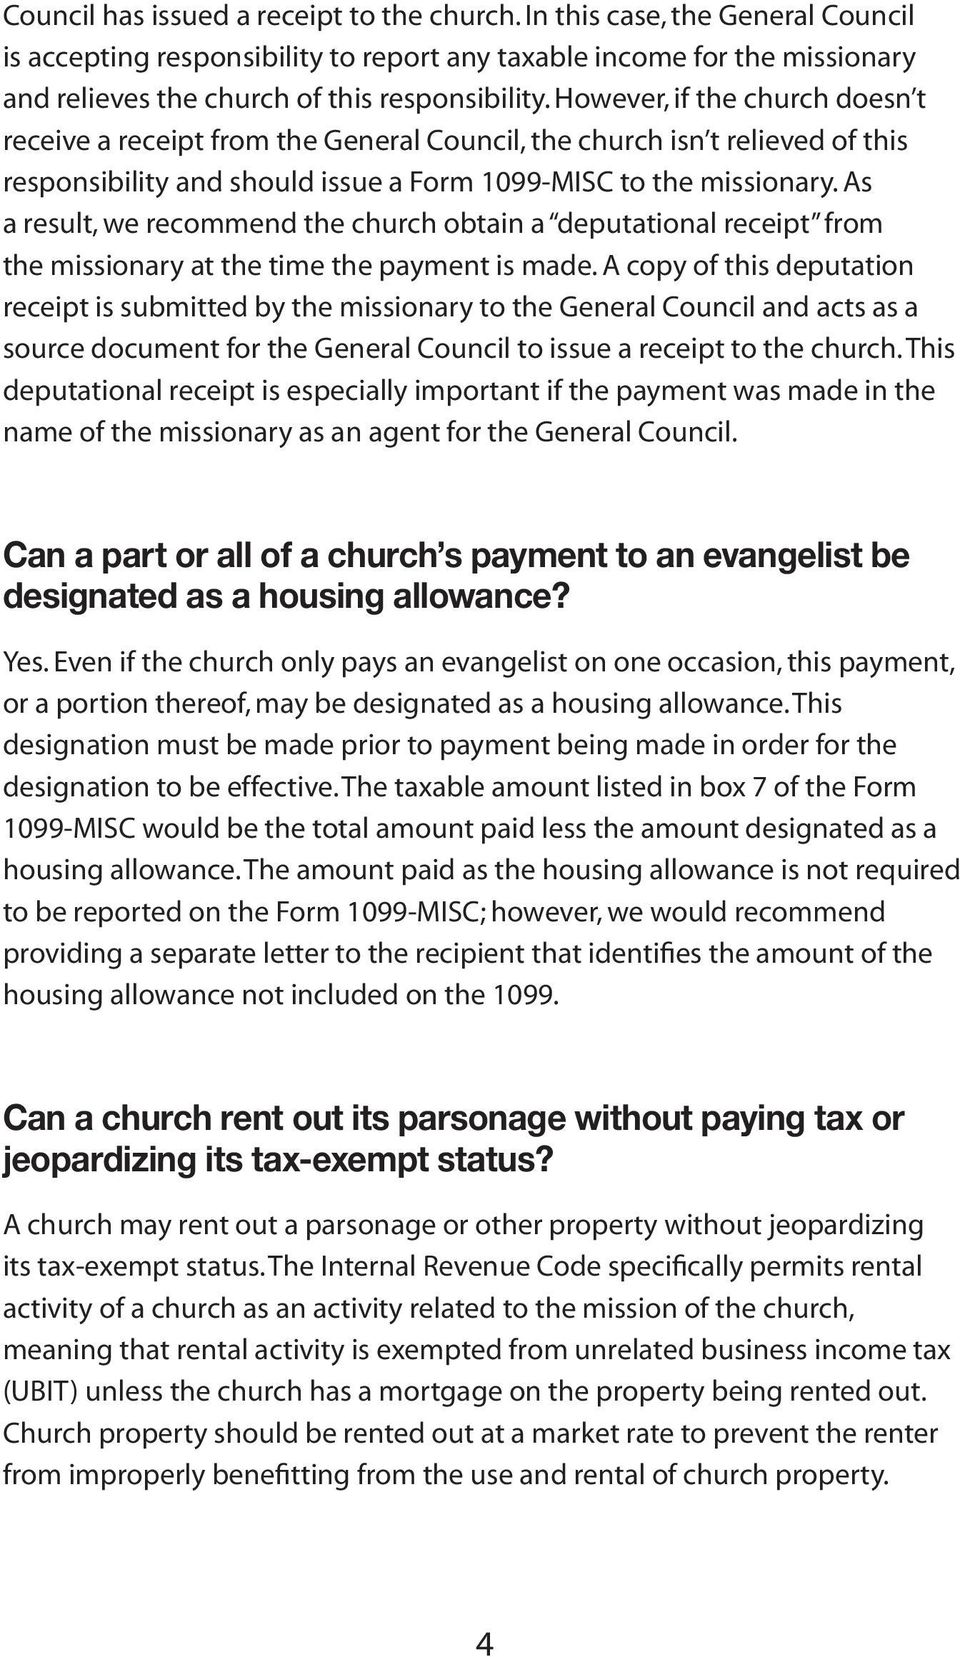 However, if the church doesn t receive a receipt from the General Council, the church isn t relieved of this responsibility and should issue a Form 1099-MISC to the missionary.